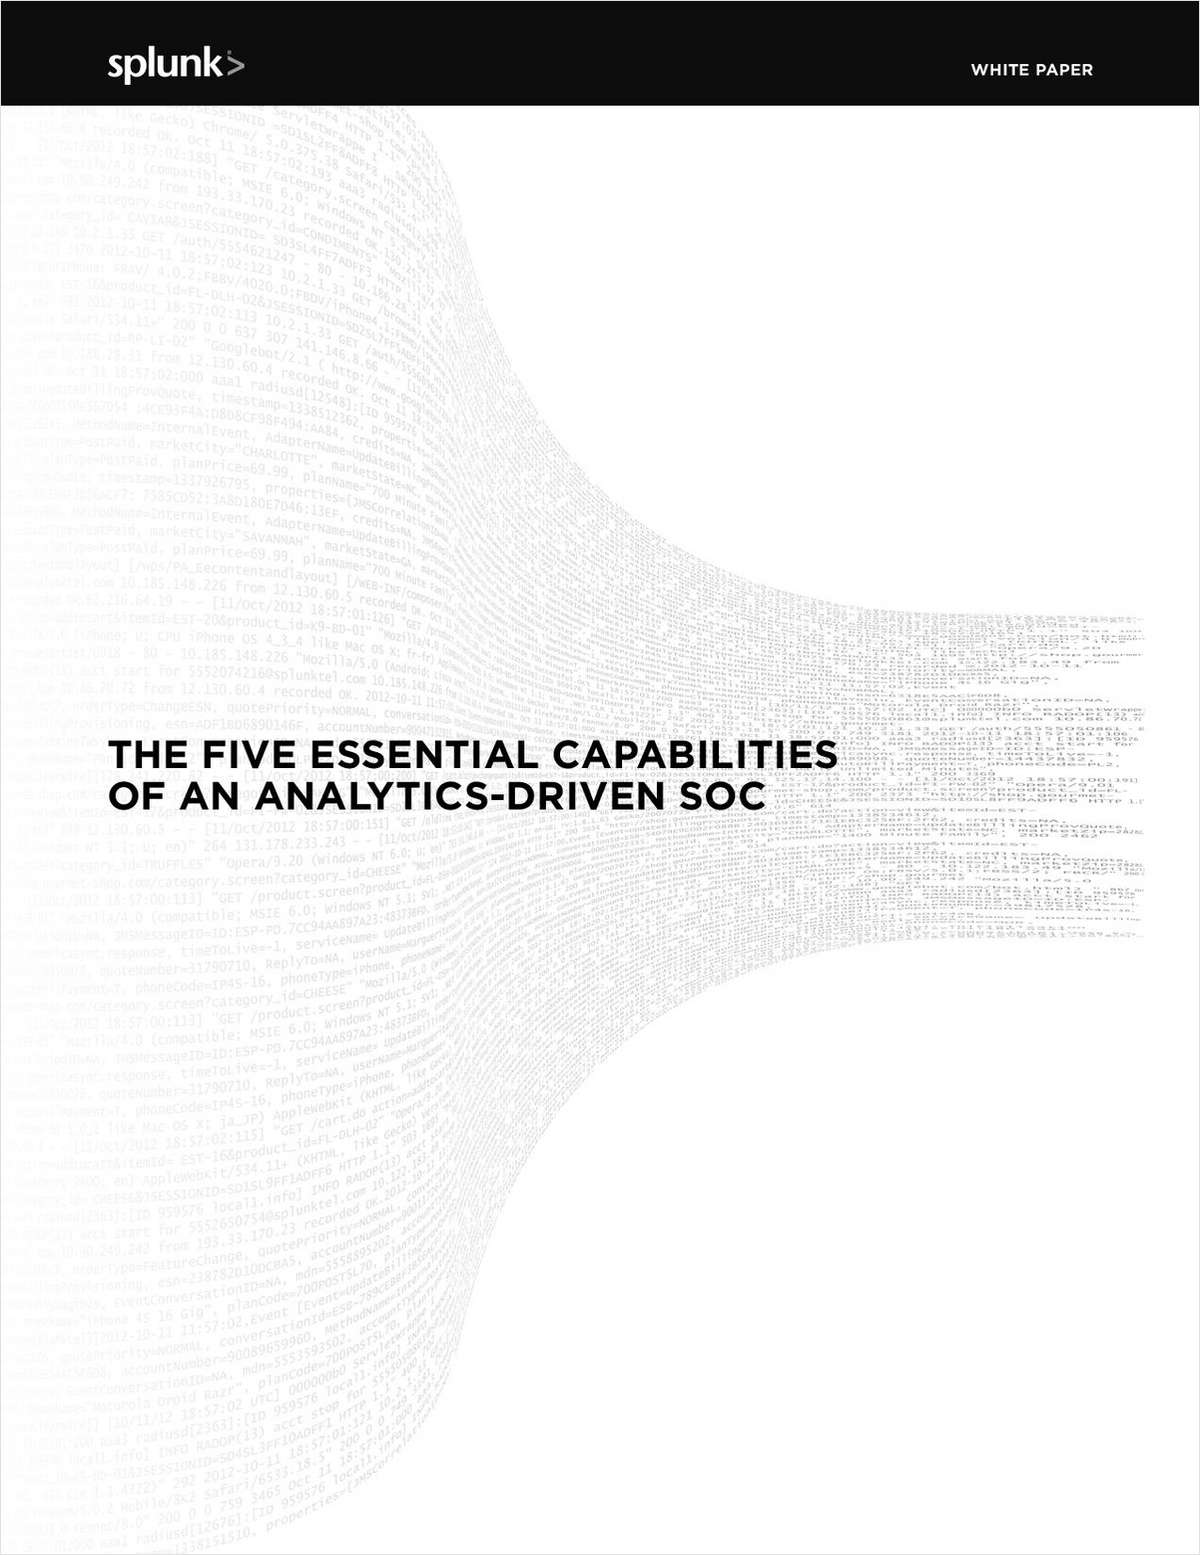 The Five Essential Capabilities of an Analytics-Driven SOC